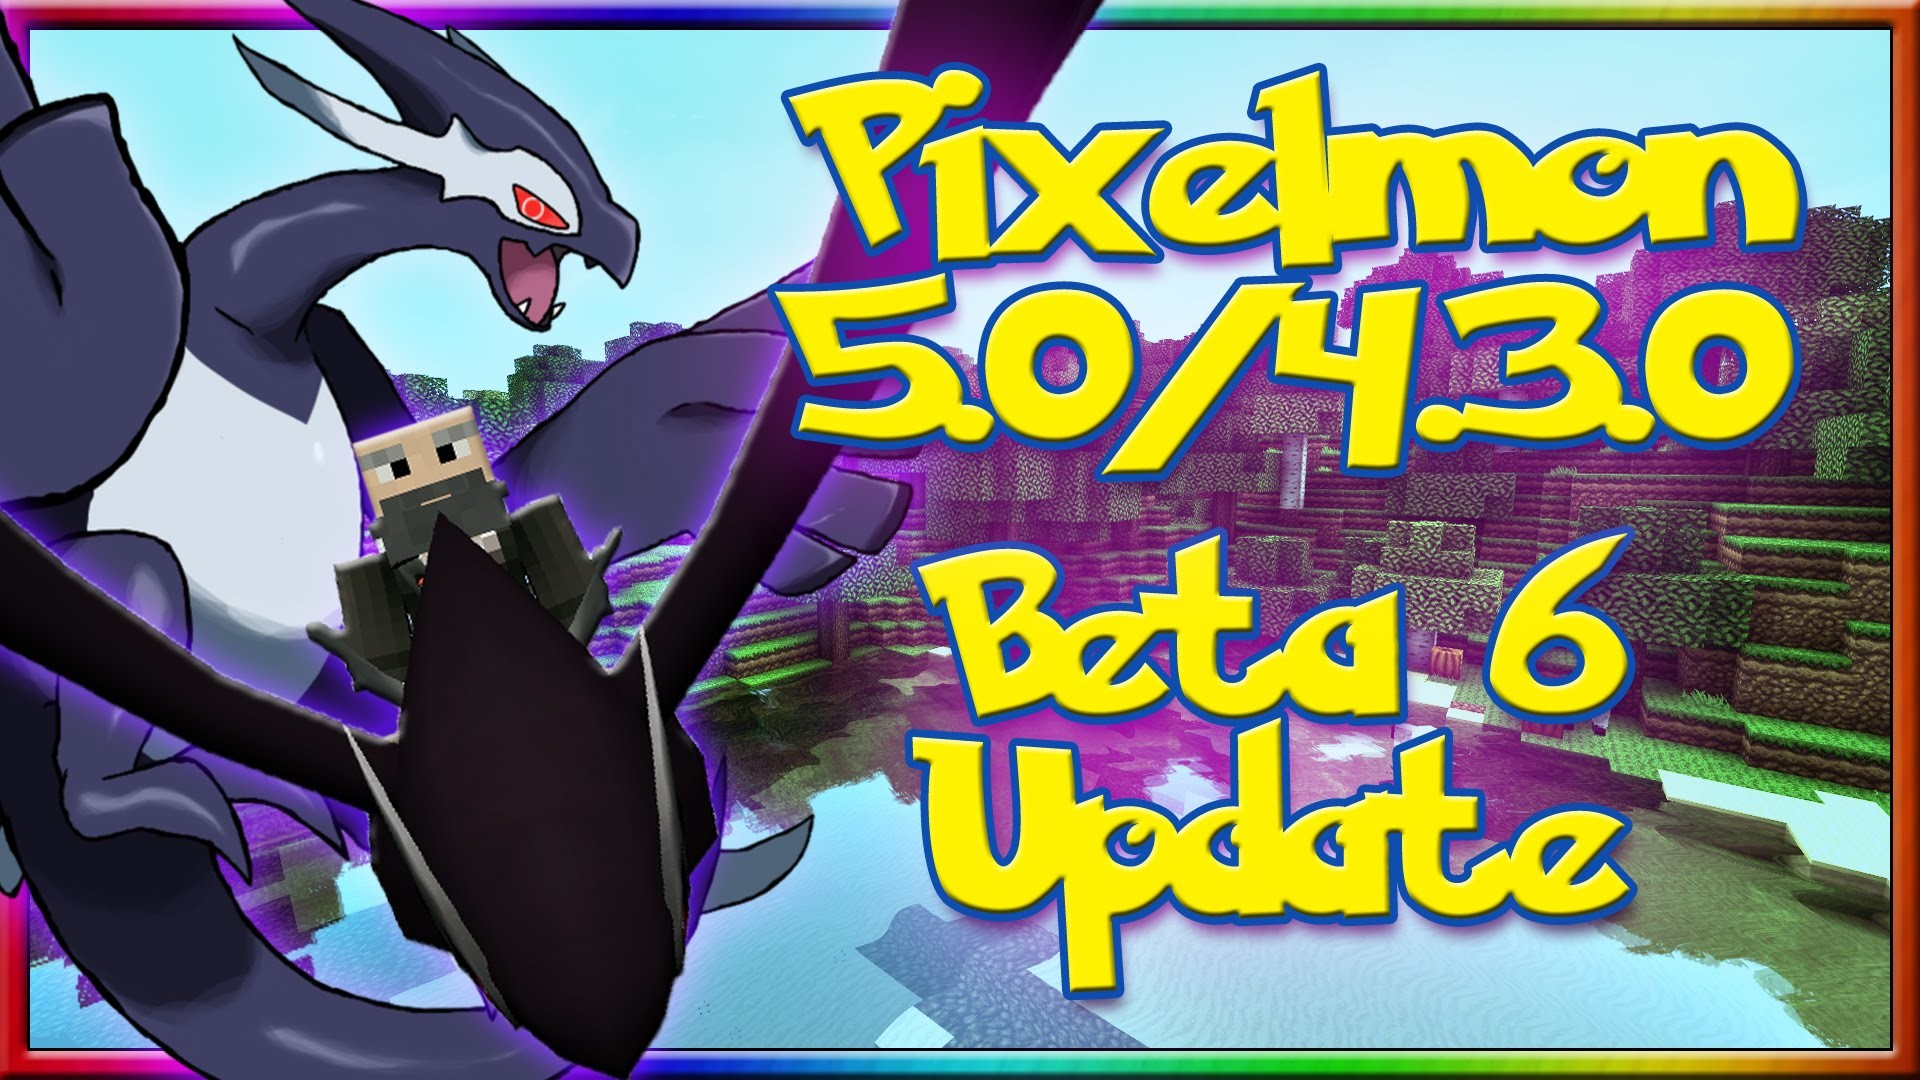 1920x1080 PIXELMON 5.0 BETA 6 UPDATE REVIEW - NEW SHADOW LUGIA!? POKEMON EDITOR! NEW  RECIPES! - YouTube